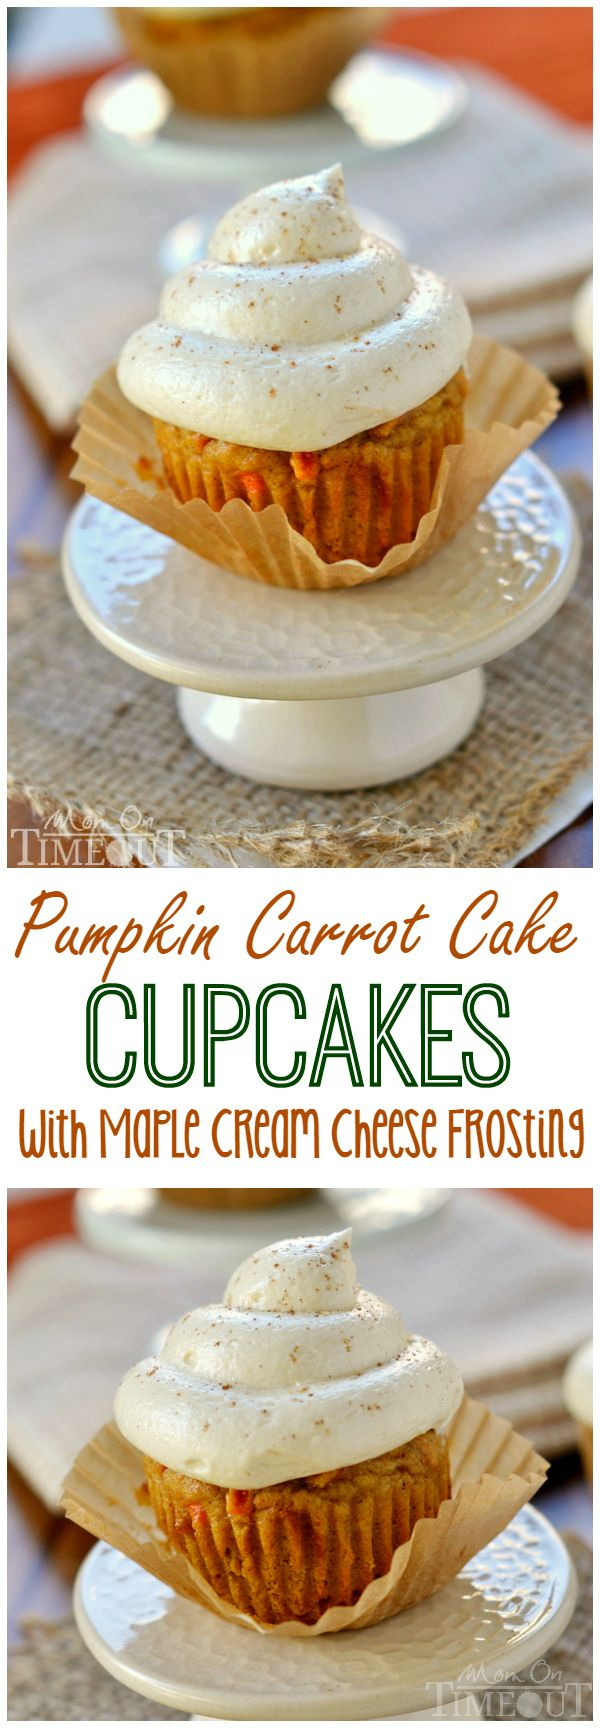 Pumpkin Carrot Cake Cupcakes with Maple Cream Cheese Frosting - Mom On Timeout #recipe #pumpkin #cupcake